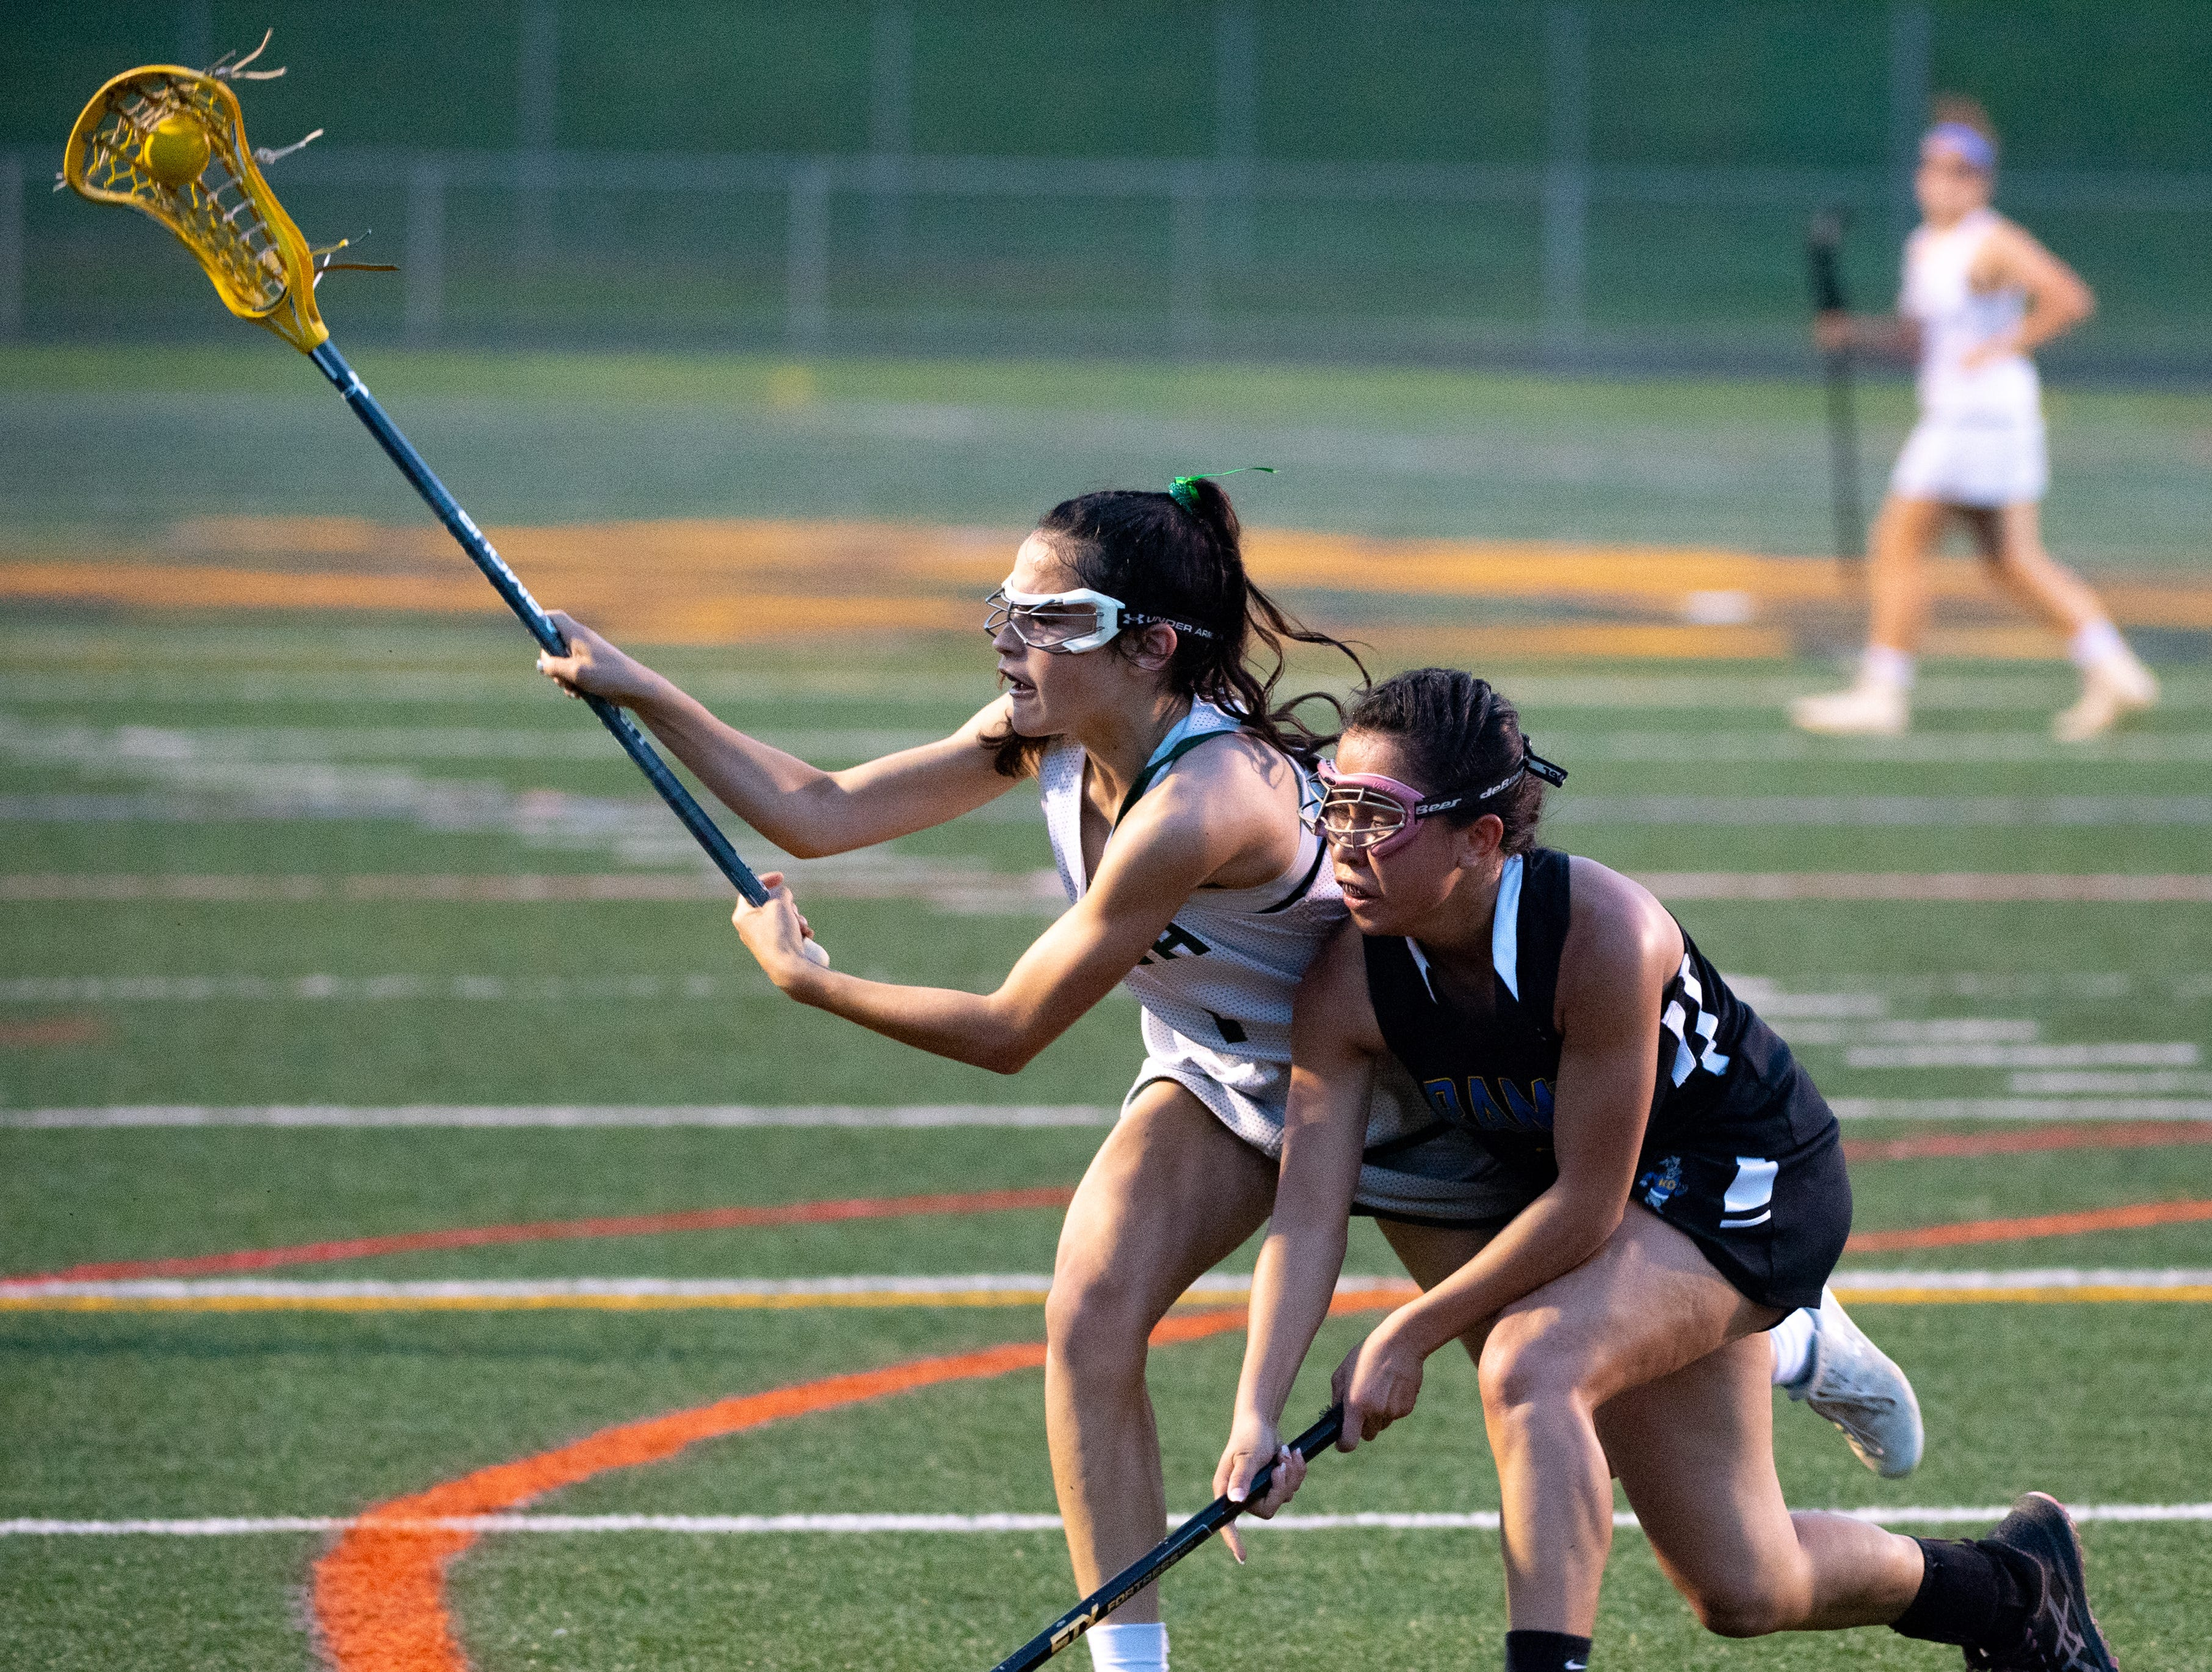 Olivia Staples (1) keeps the ball away from Jenna Soukaseum (1) during the YAIAA girls lacrosse championship game between York Catholic and Kennard-Dale, May 10, 2019 at Eastern York High School. The Rams defeated the Fighting Irish 11 to 10.